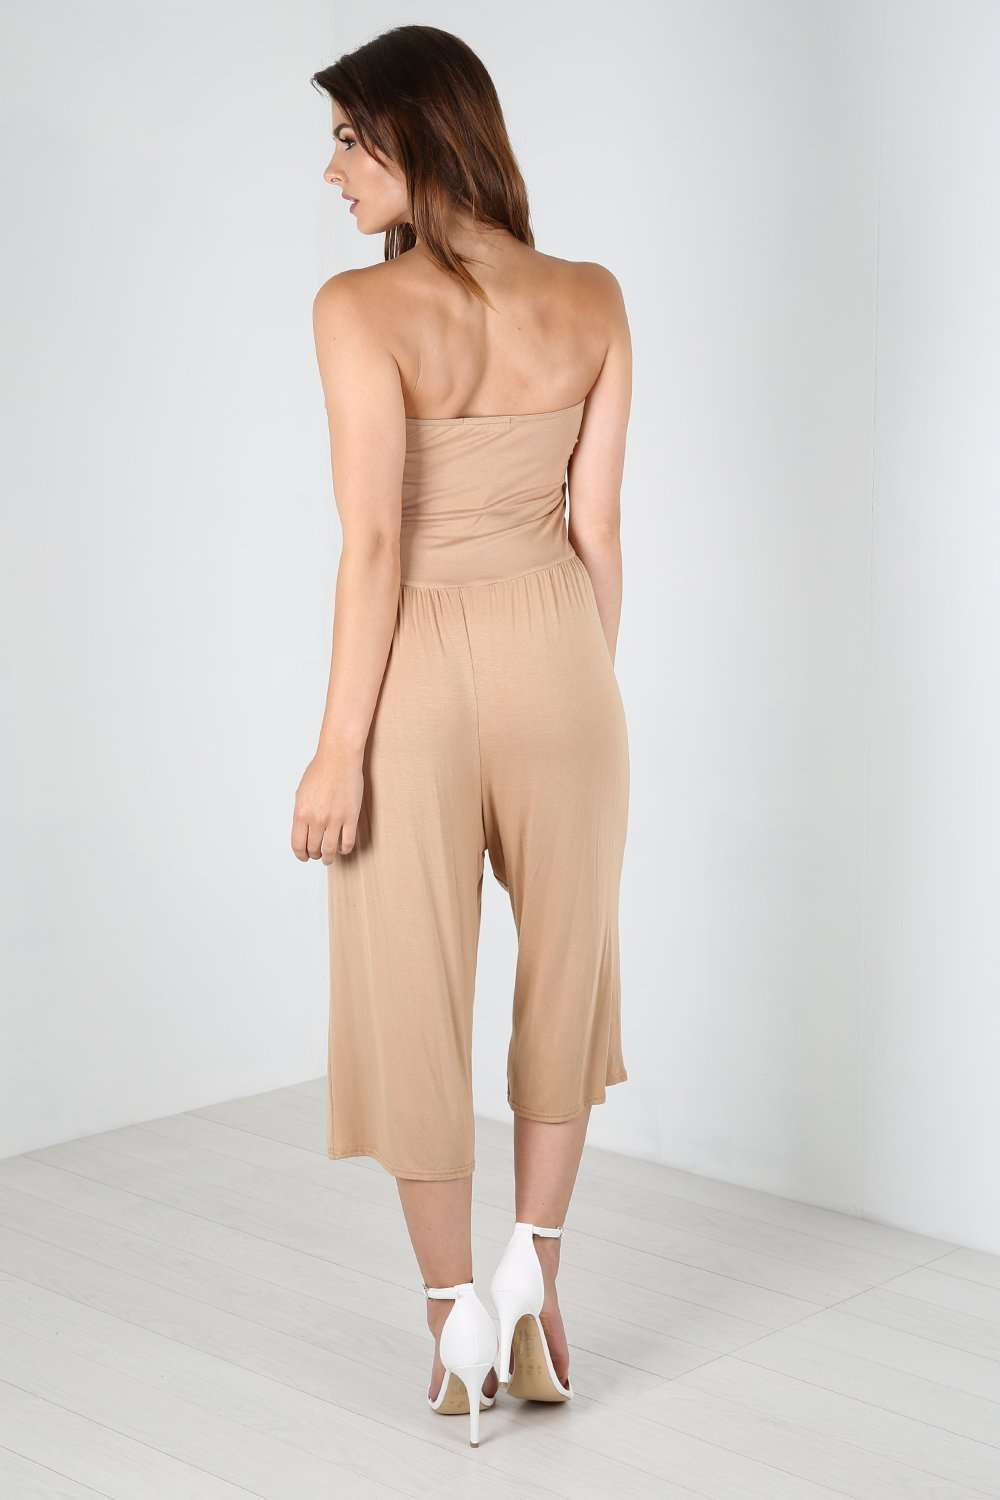 Mya Boobtube Ruched Sleeveless Jumpsuit - bejealous-com